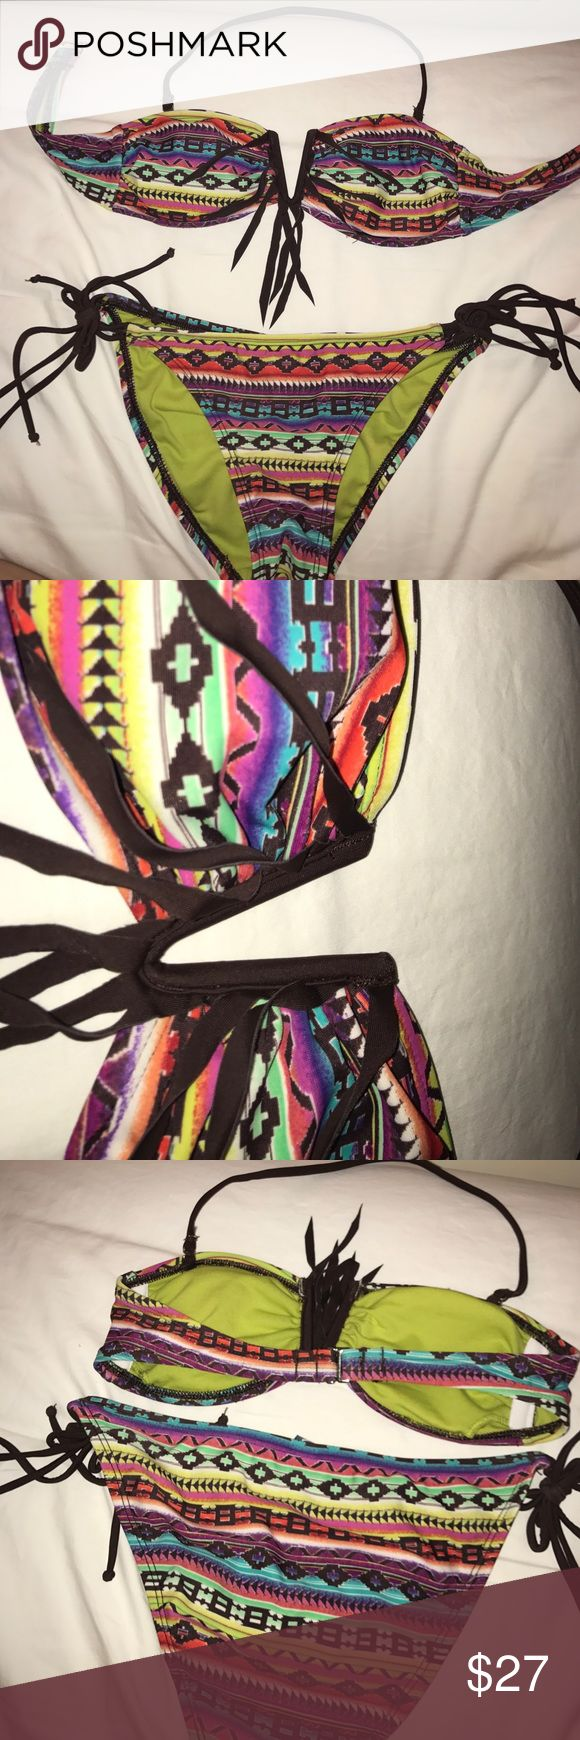 Target fringe bandeau bikini top and bottoms rainbow pattern with brown fringe and ties, never worn. (has a removable strap for the bandeau top). both top and bottom are size xs in women's target Swim Bikinis